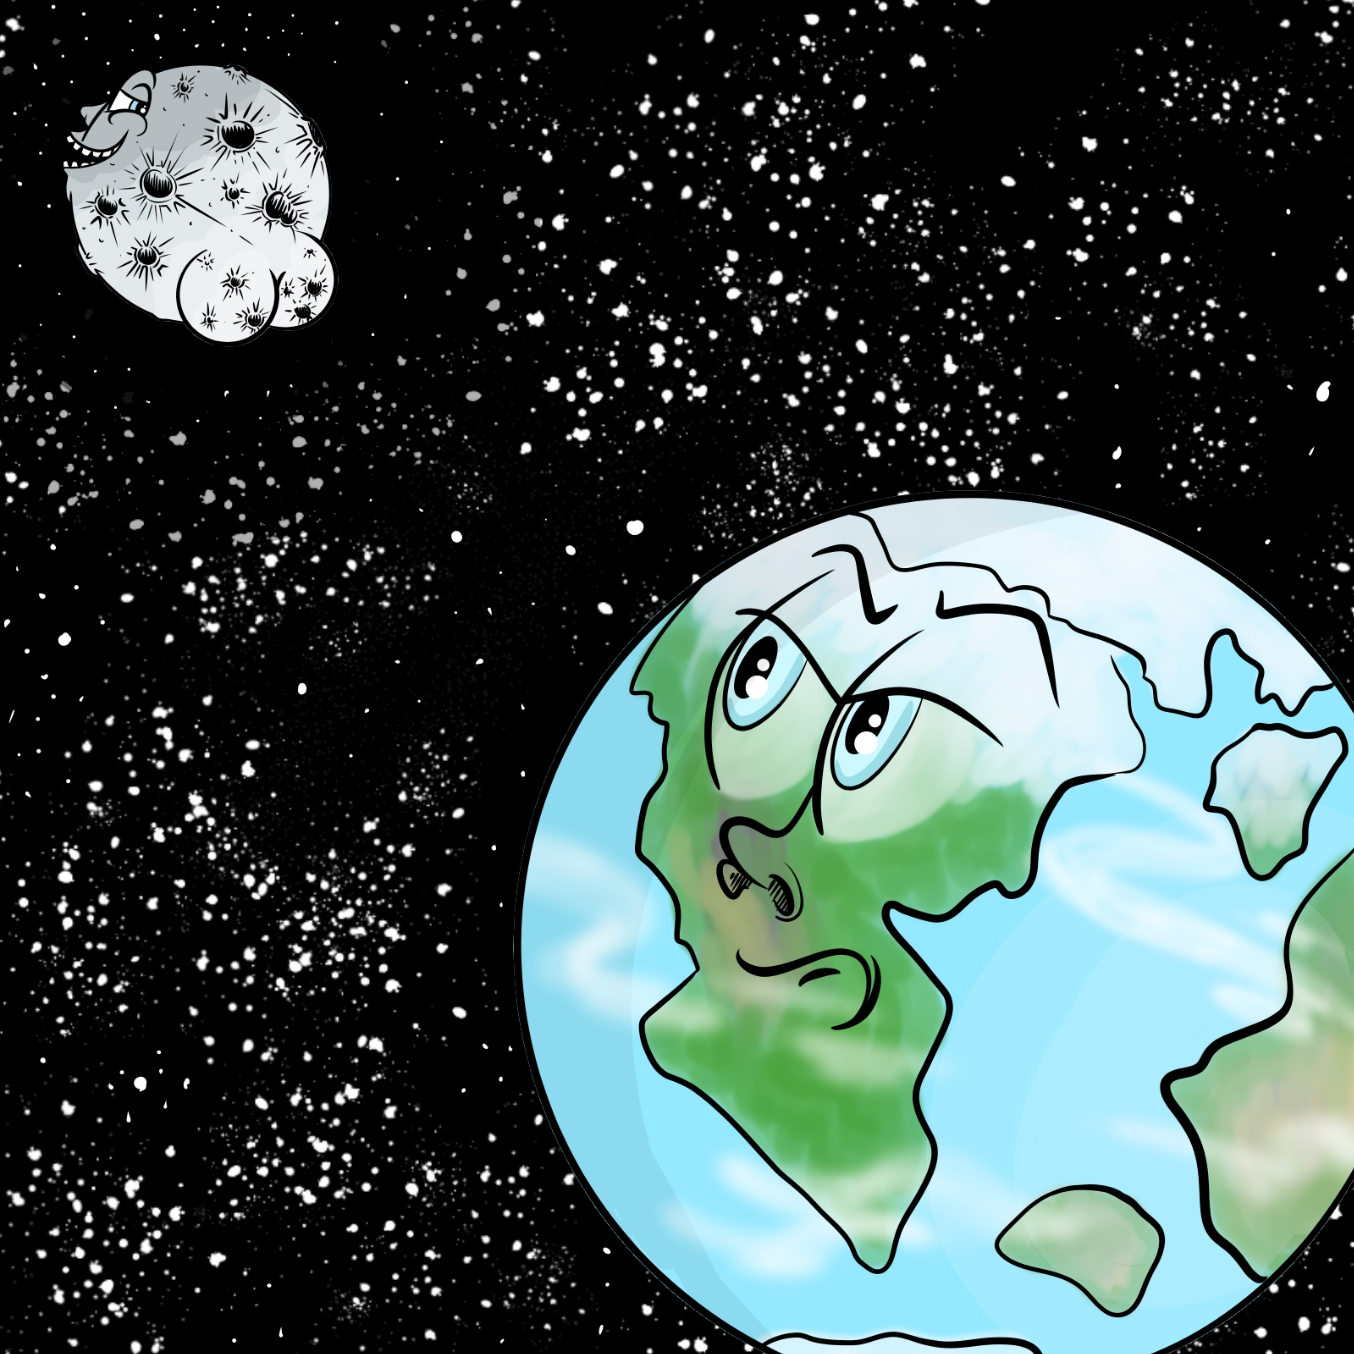 First panel in Luna Mooner drawn in our free online drawing game